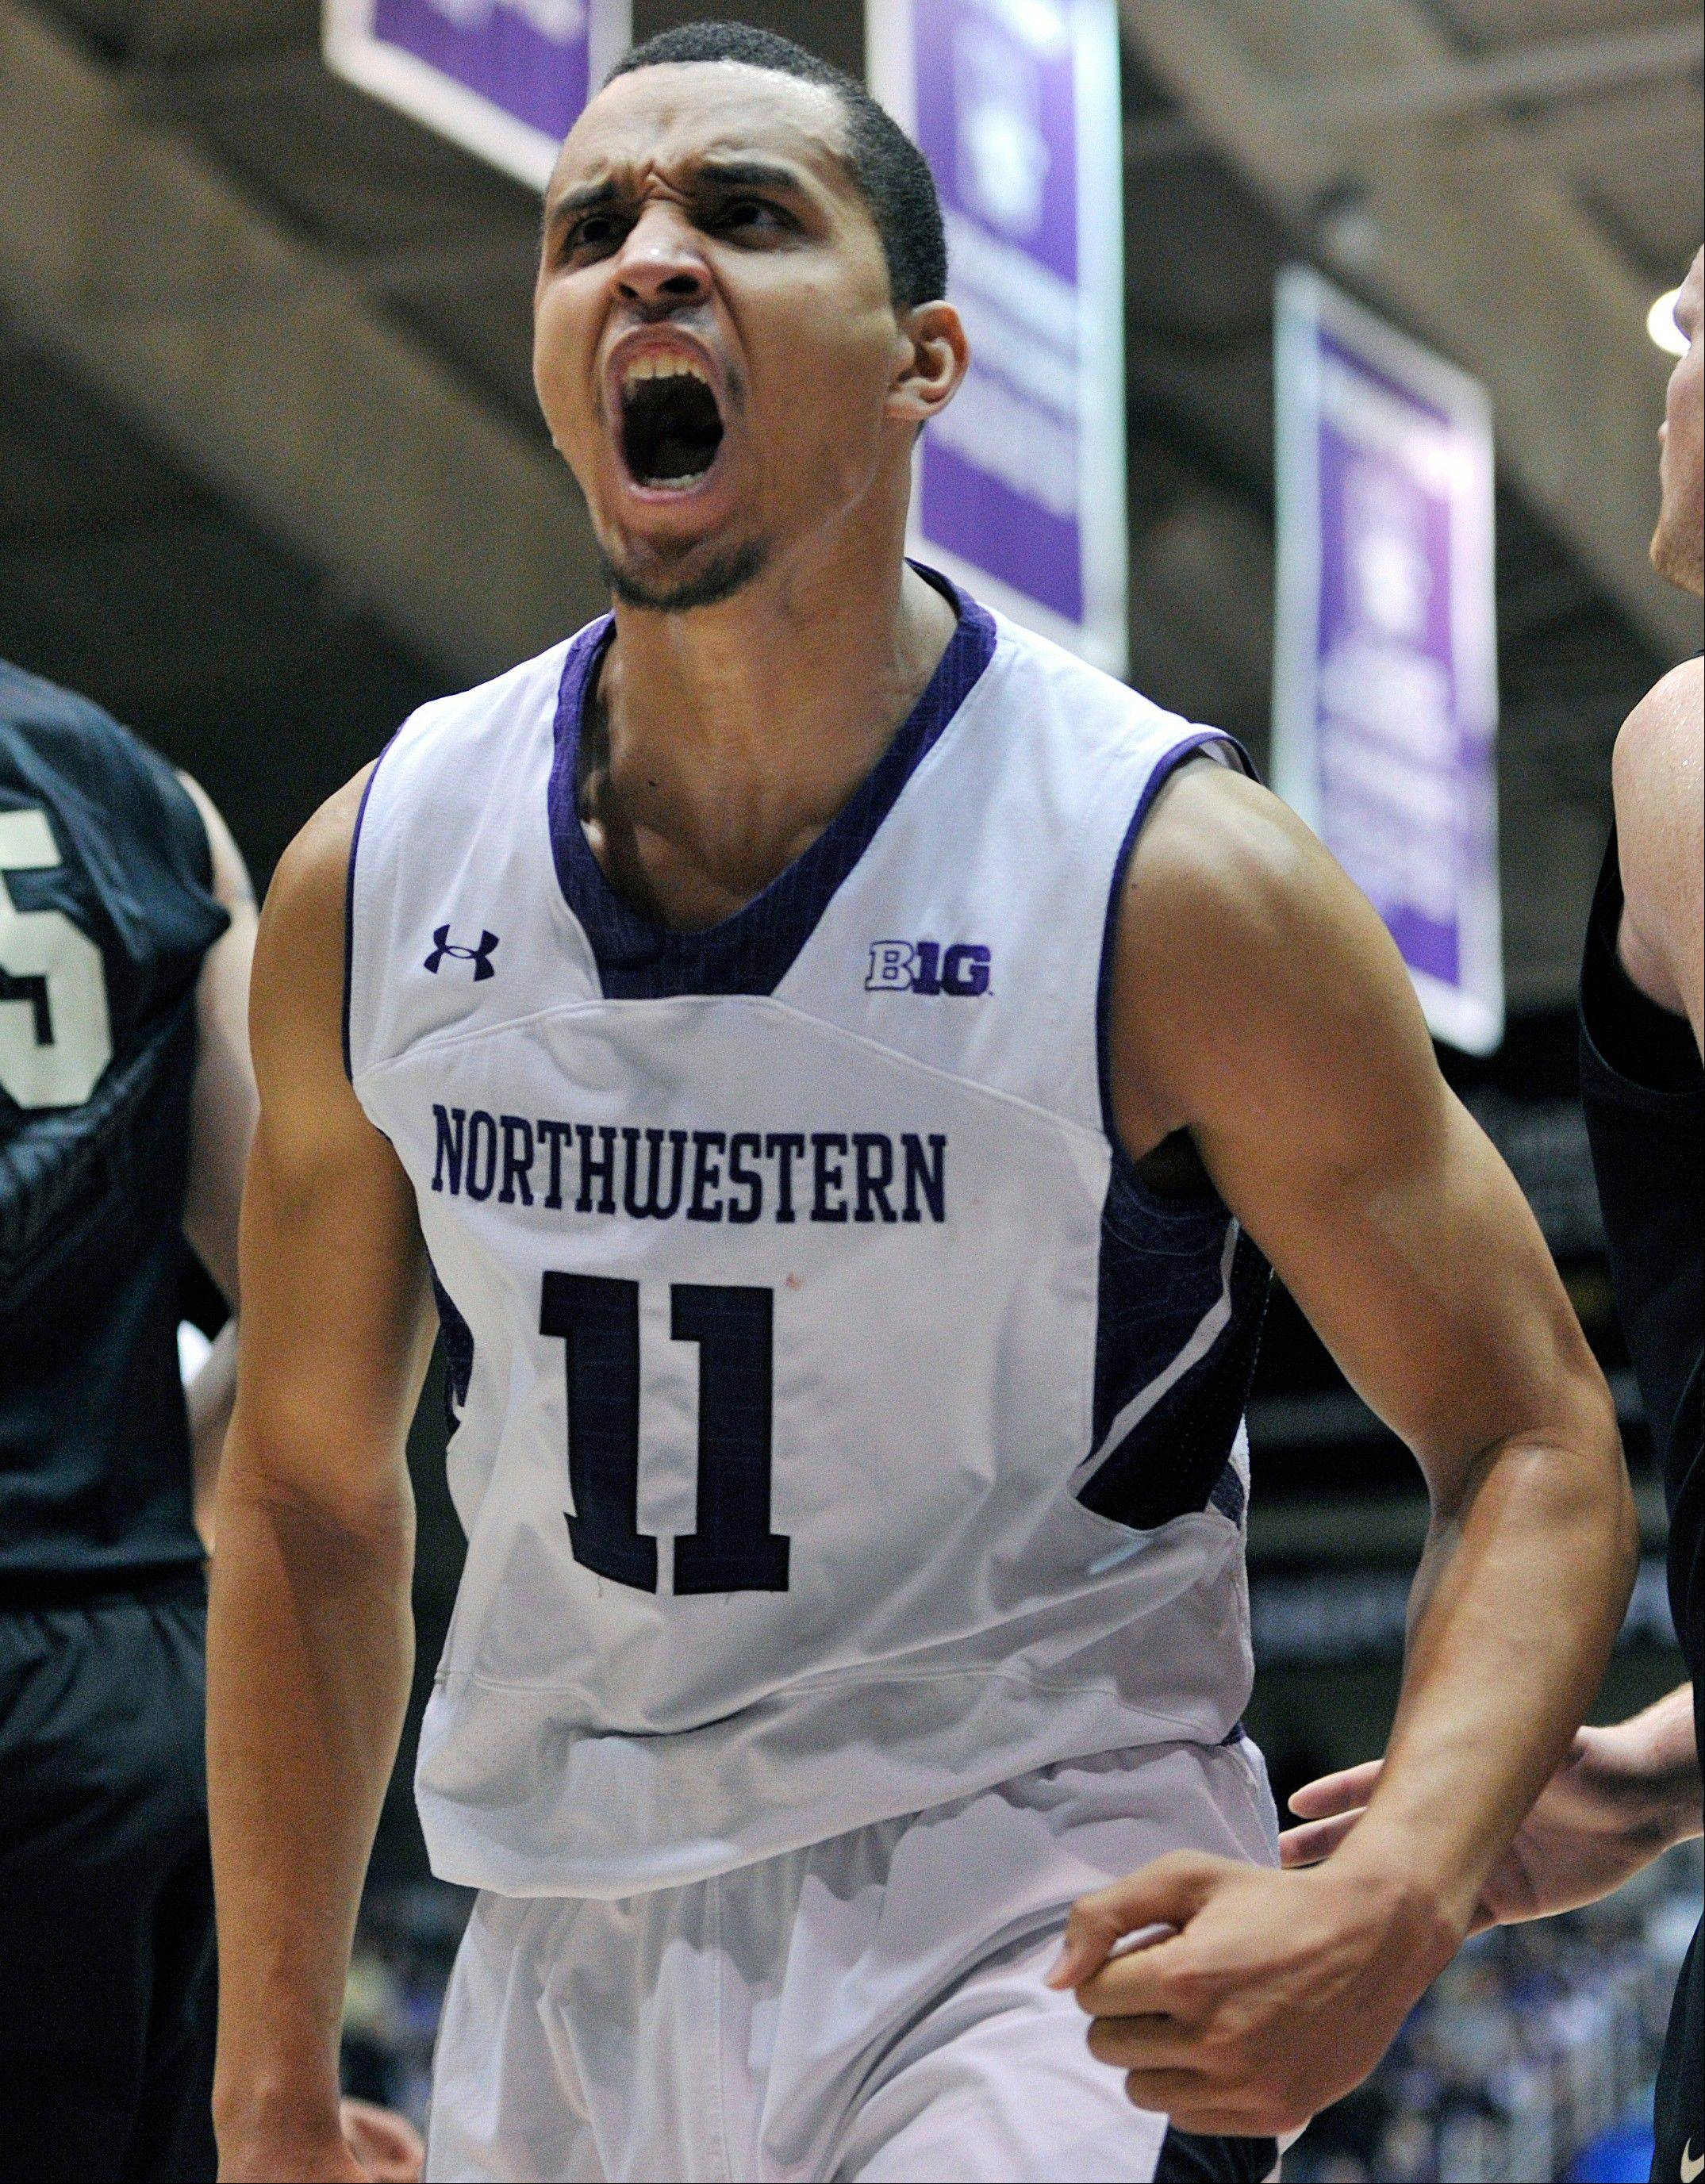 Northwestern's Reggie Hearn celebrates a basket against Purdue Saturday during the second half.